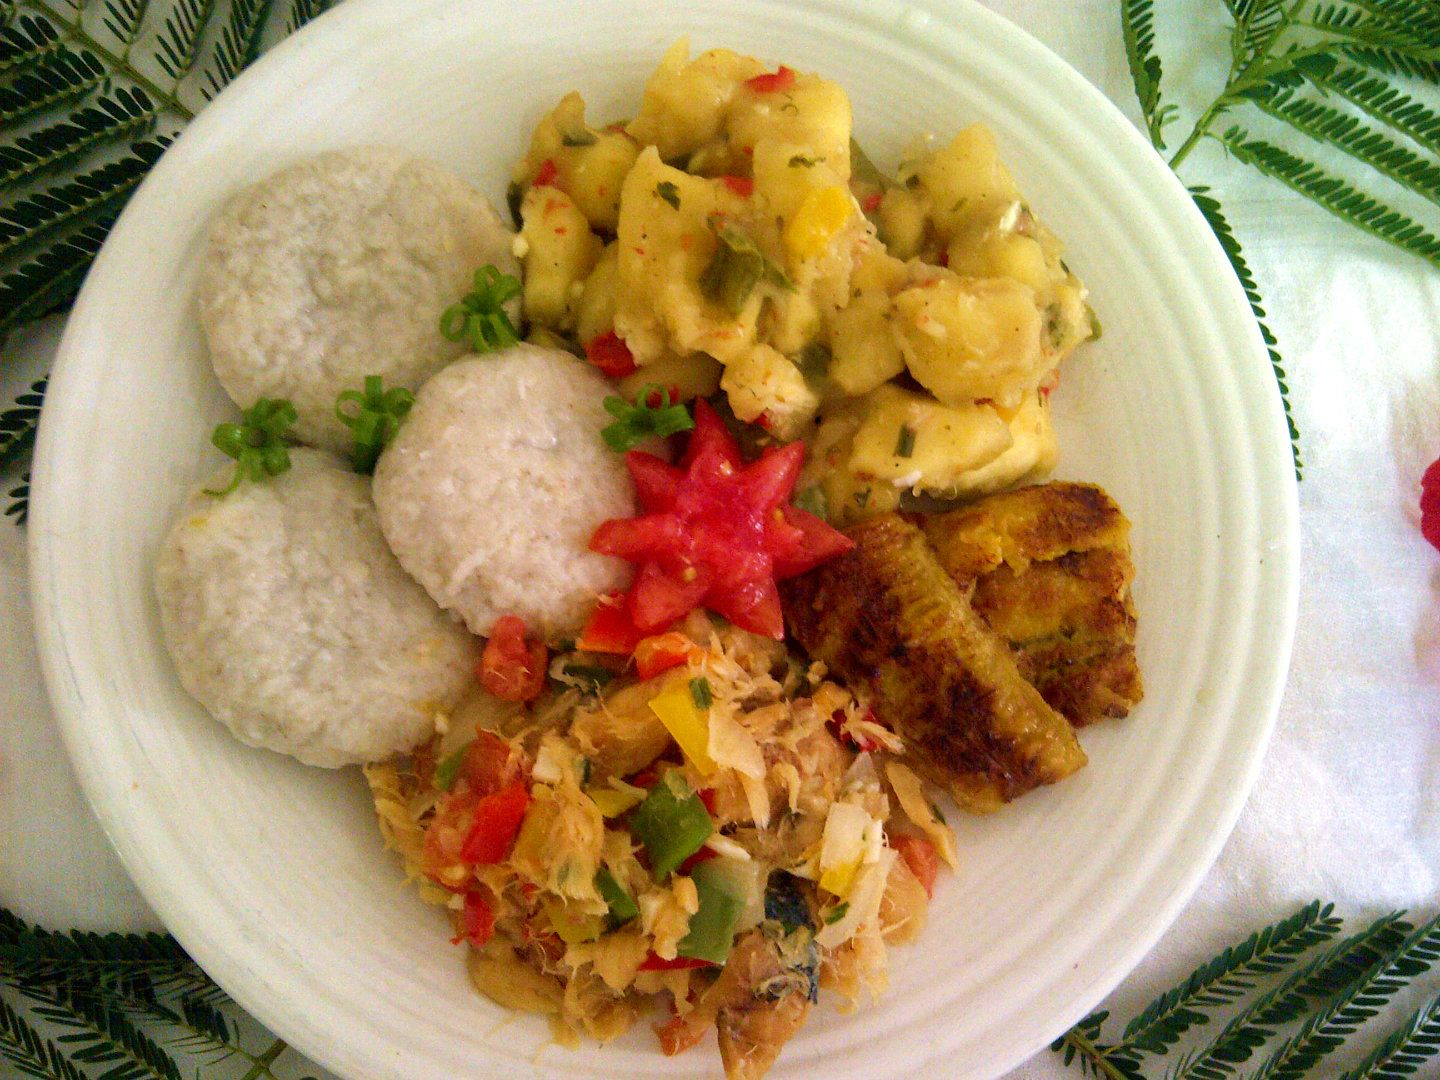 The national dish of saint kitts and nevis stewed saltfish with the national dish of saint kitts and nevis stewed saltfish with spicy plantains and coconut dumplings caribbean recipescaribbean foodisland forumfinder Gallery